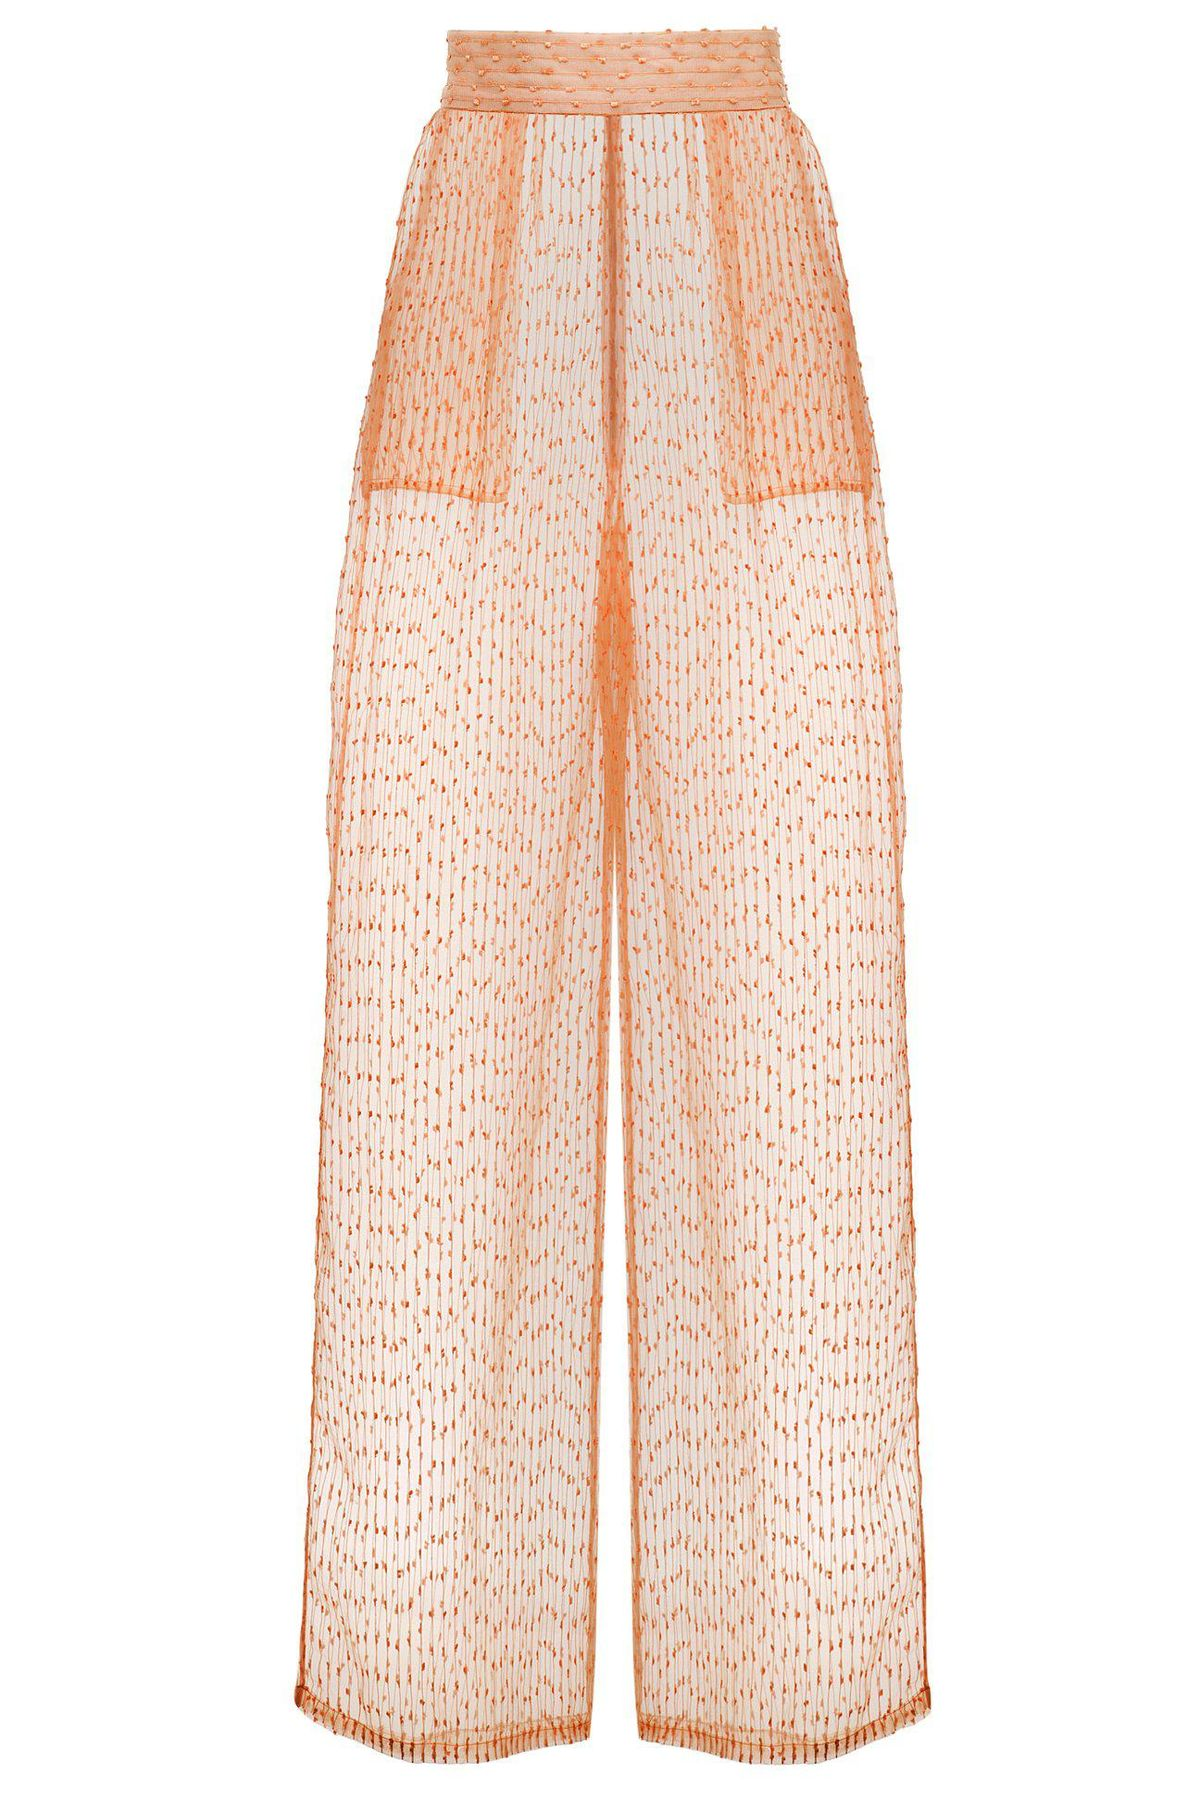 Spice Sheer Pant